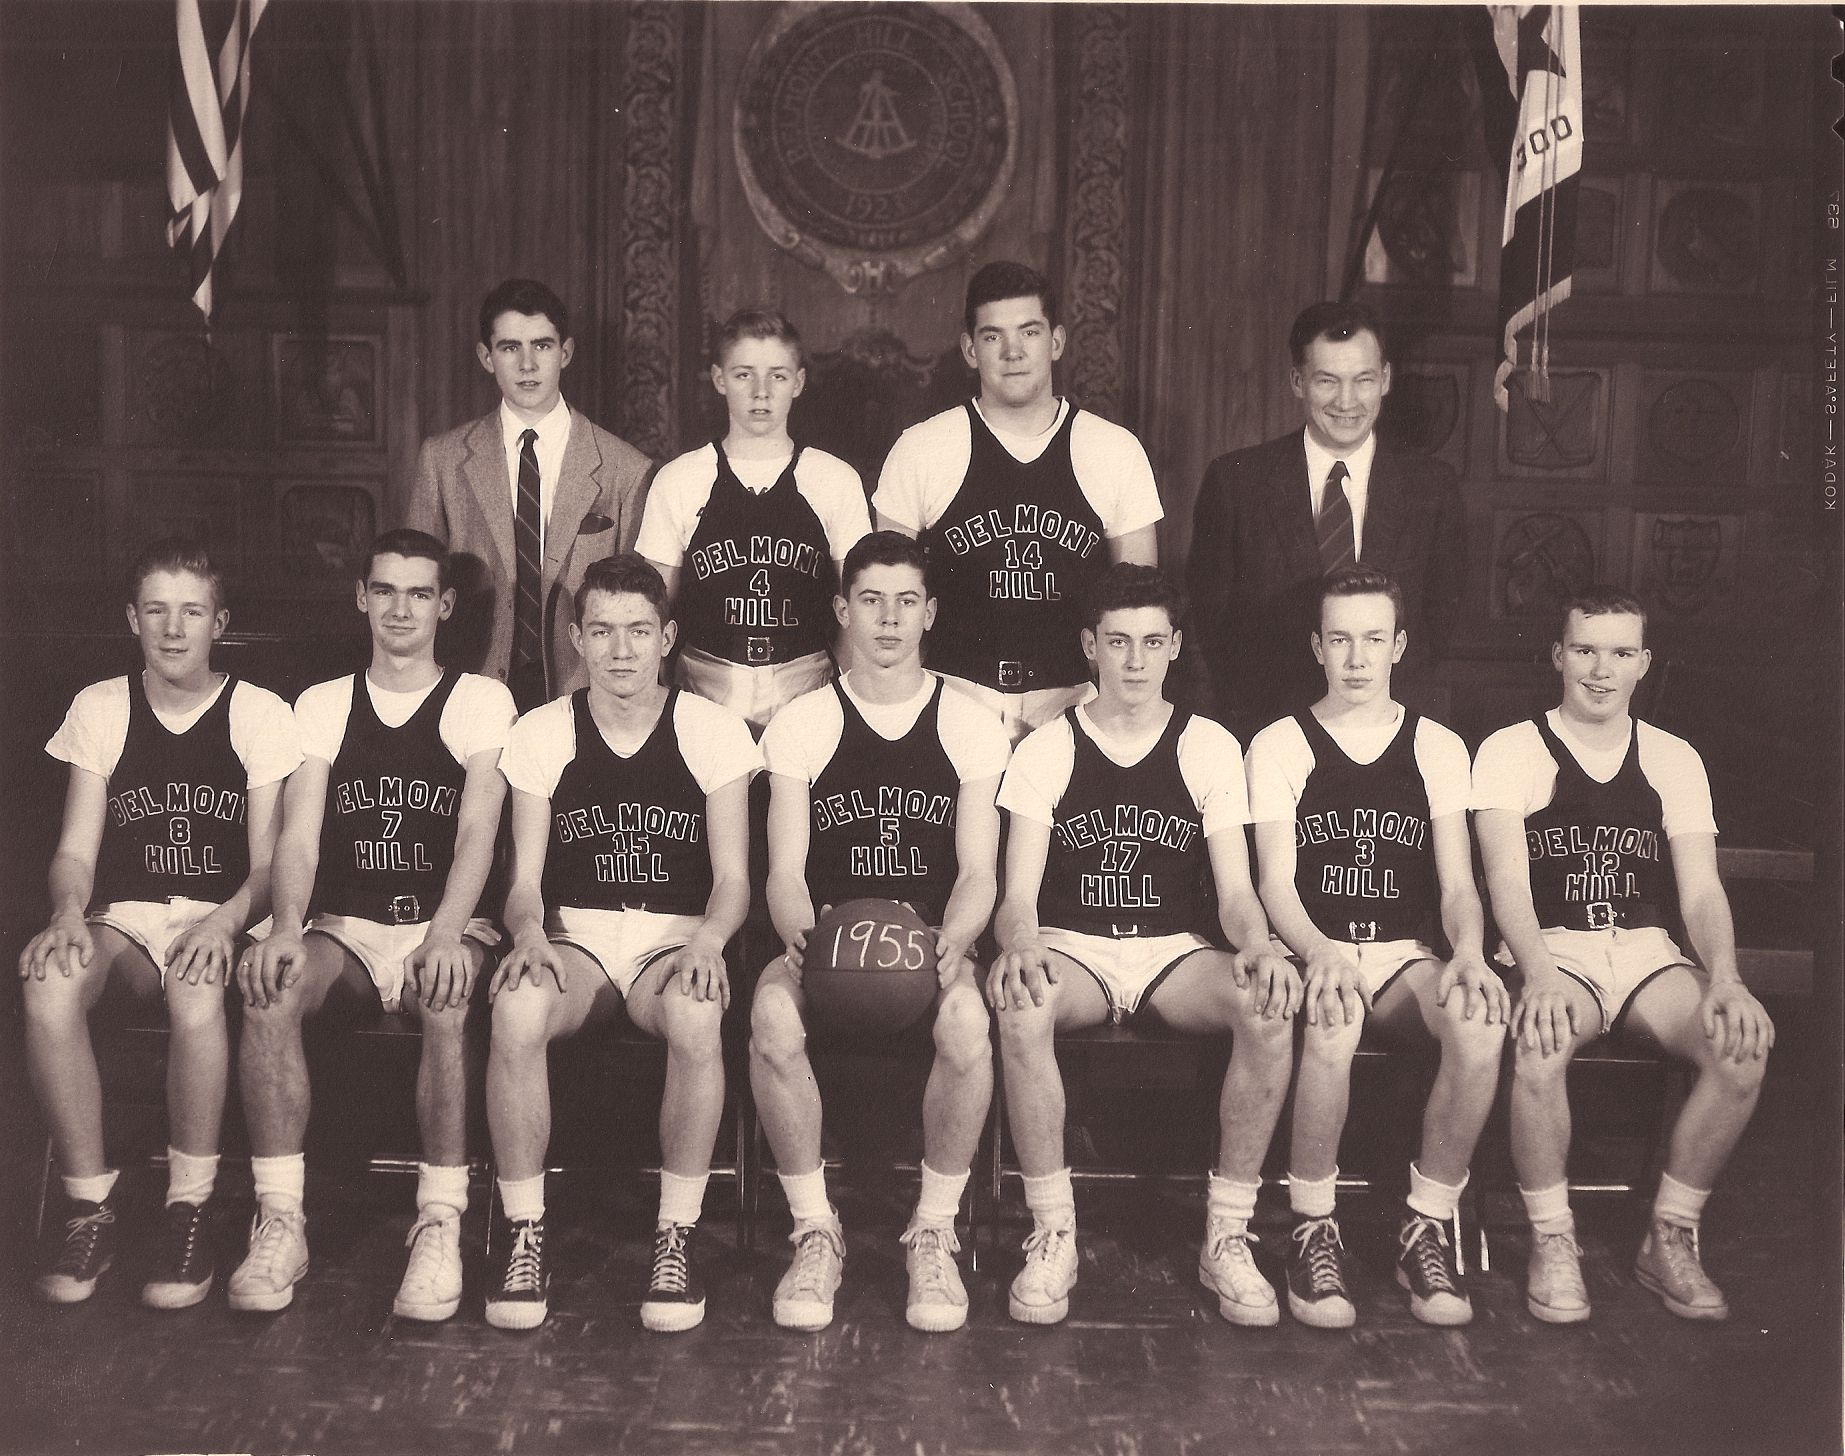 Front Row: R. Woodbury, P. O'Leary, J. Wilcox, Repetto, Zayoti, Eaton, Hammond Back Row: R. O'Leary, J. Woodbury, Hurd, Mr. Croke